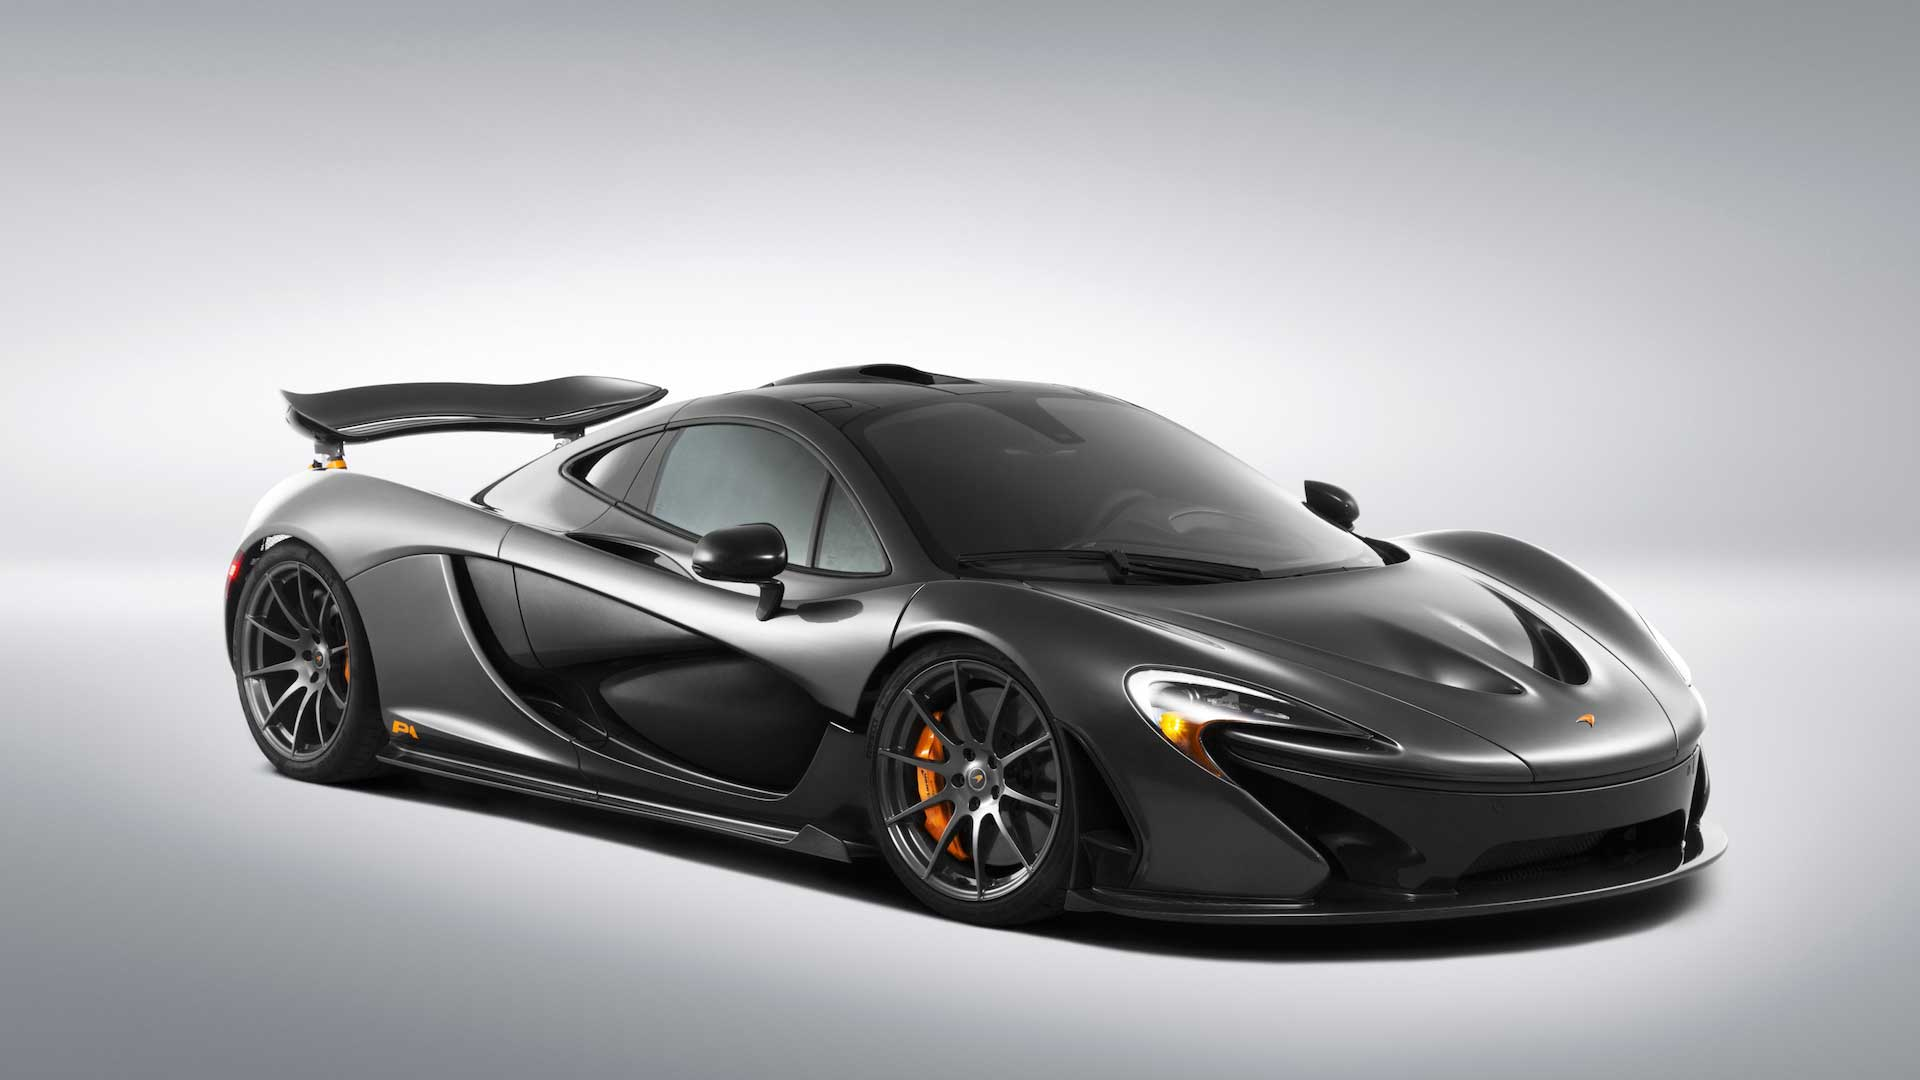 10 of the Quickest Cars in the World - The Drive